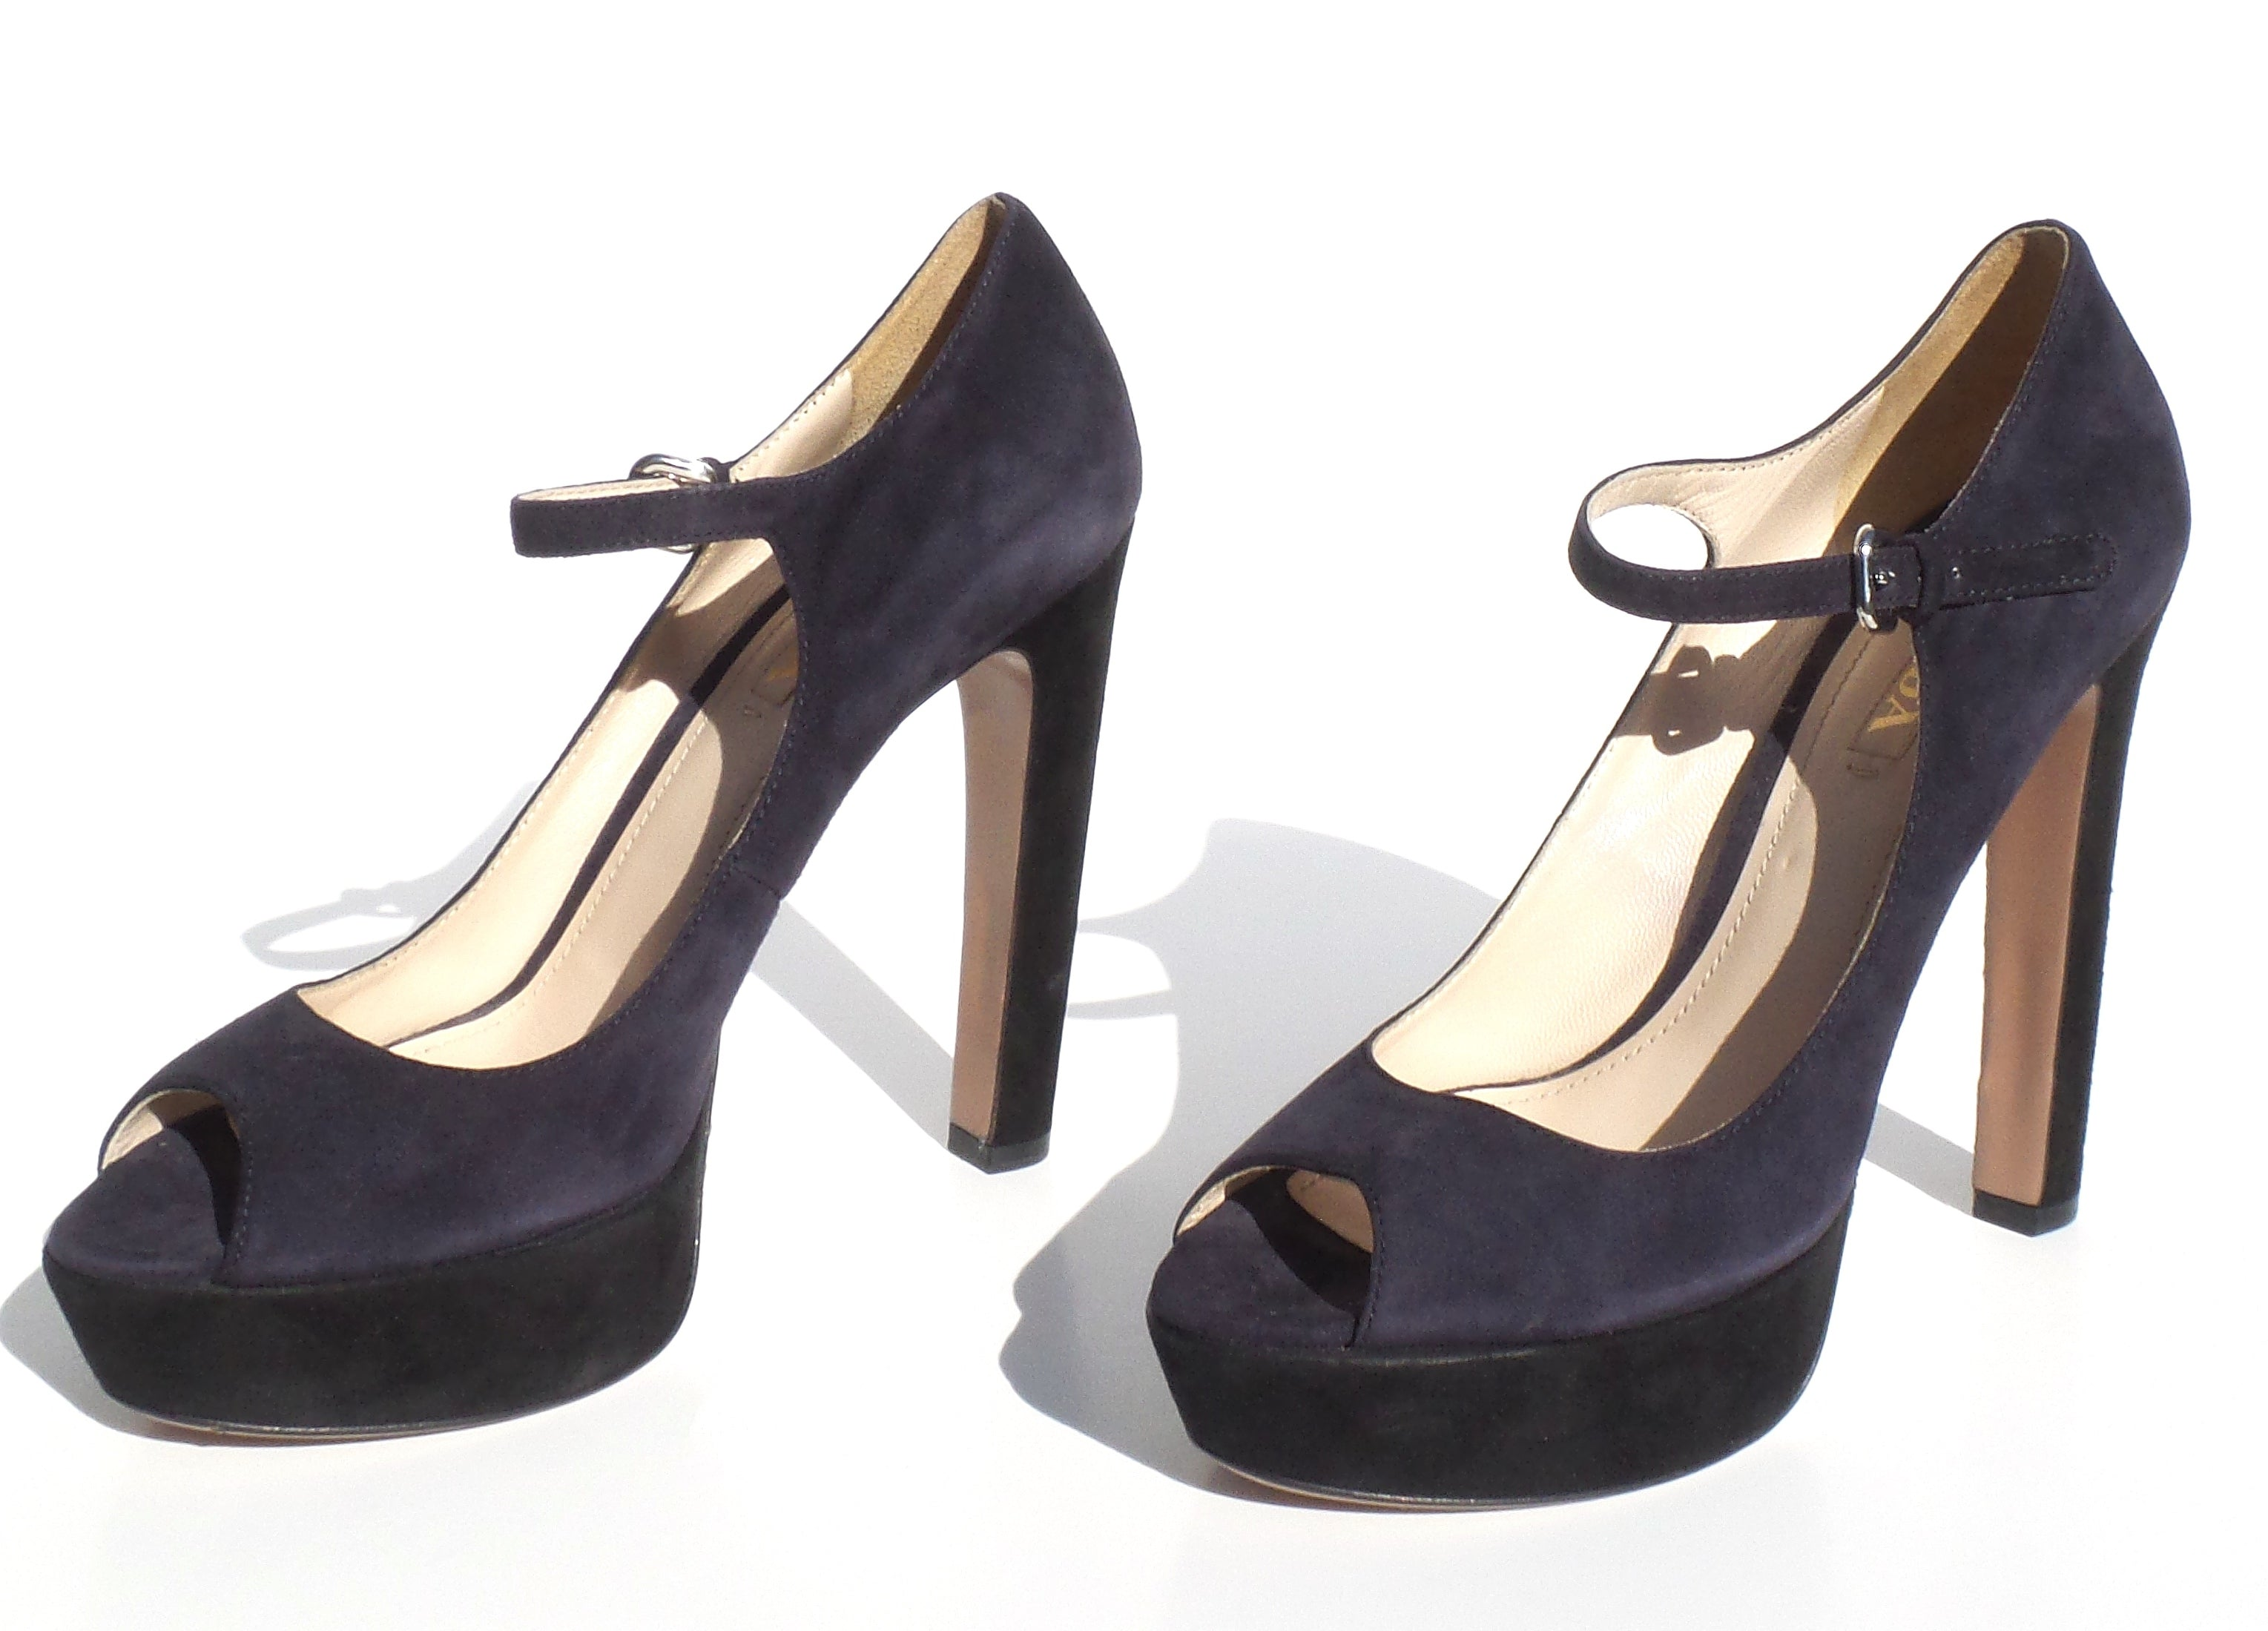 PRADA Navy Blue Black Suede Colorblock Platform Peep Toe Ankle Strap Sandals 40